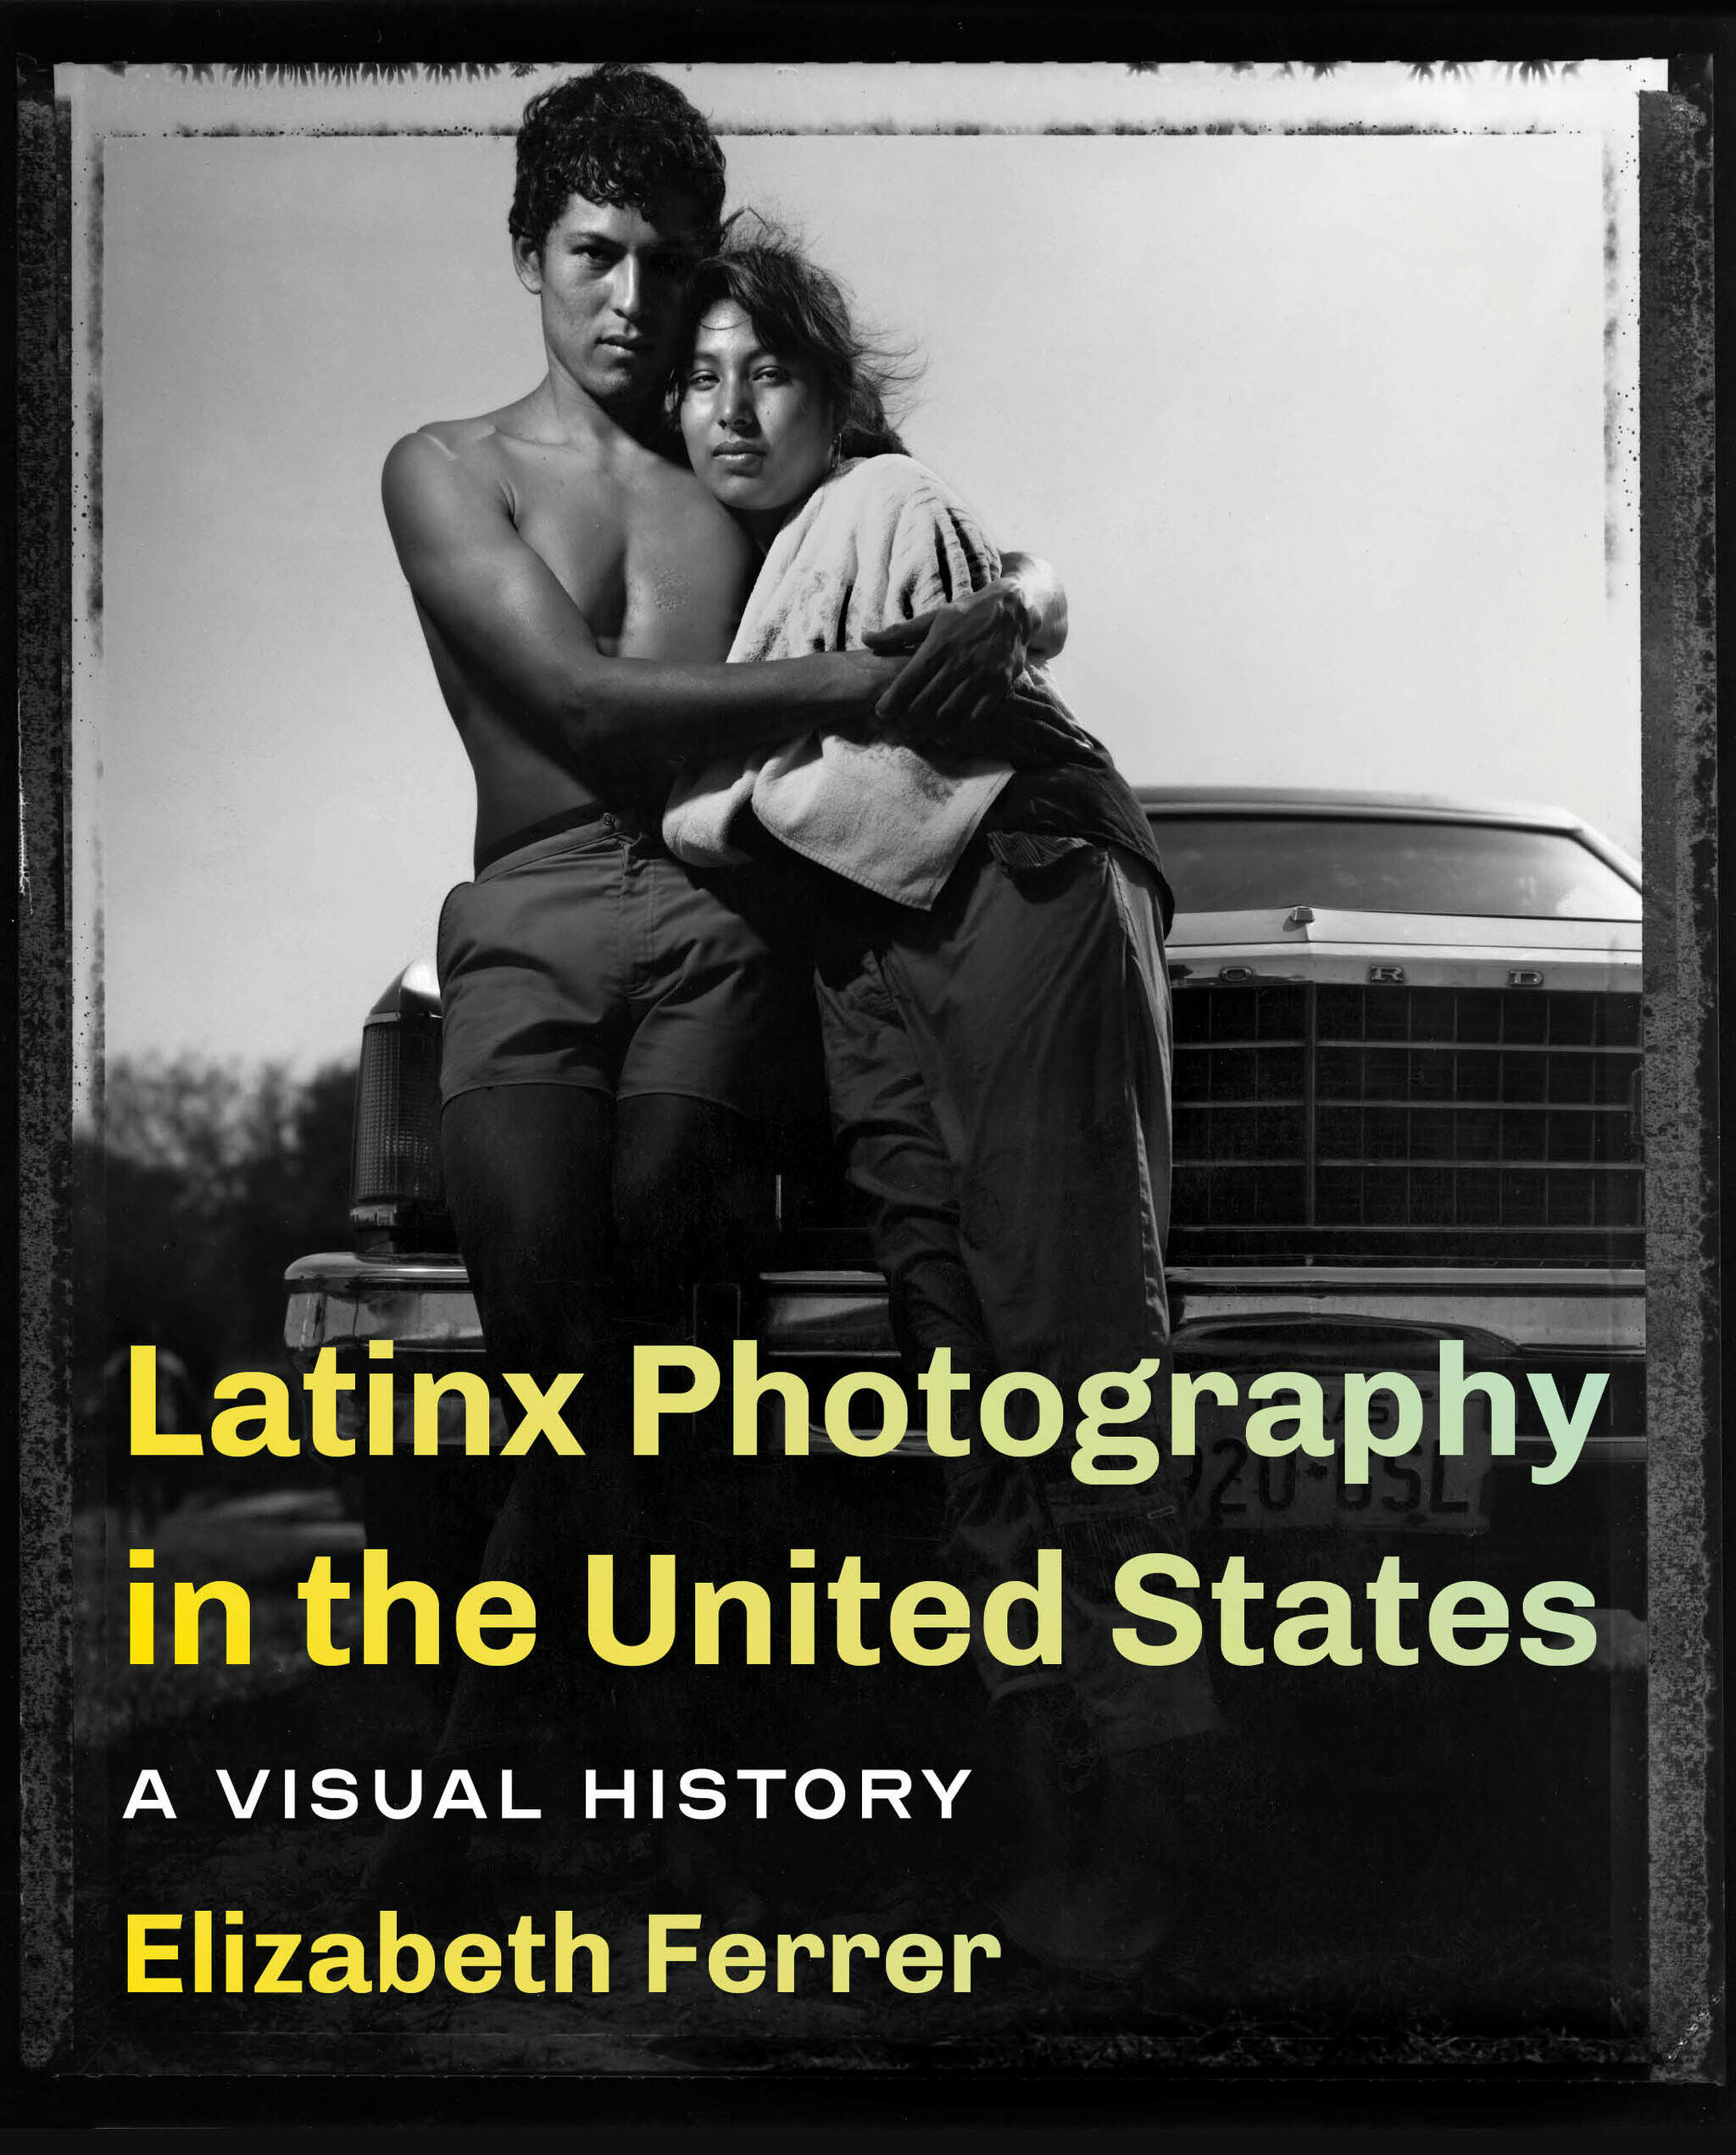 A book cover with two Latinx people leaning against the front of a car.